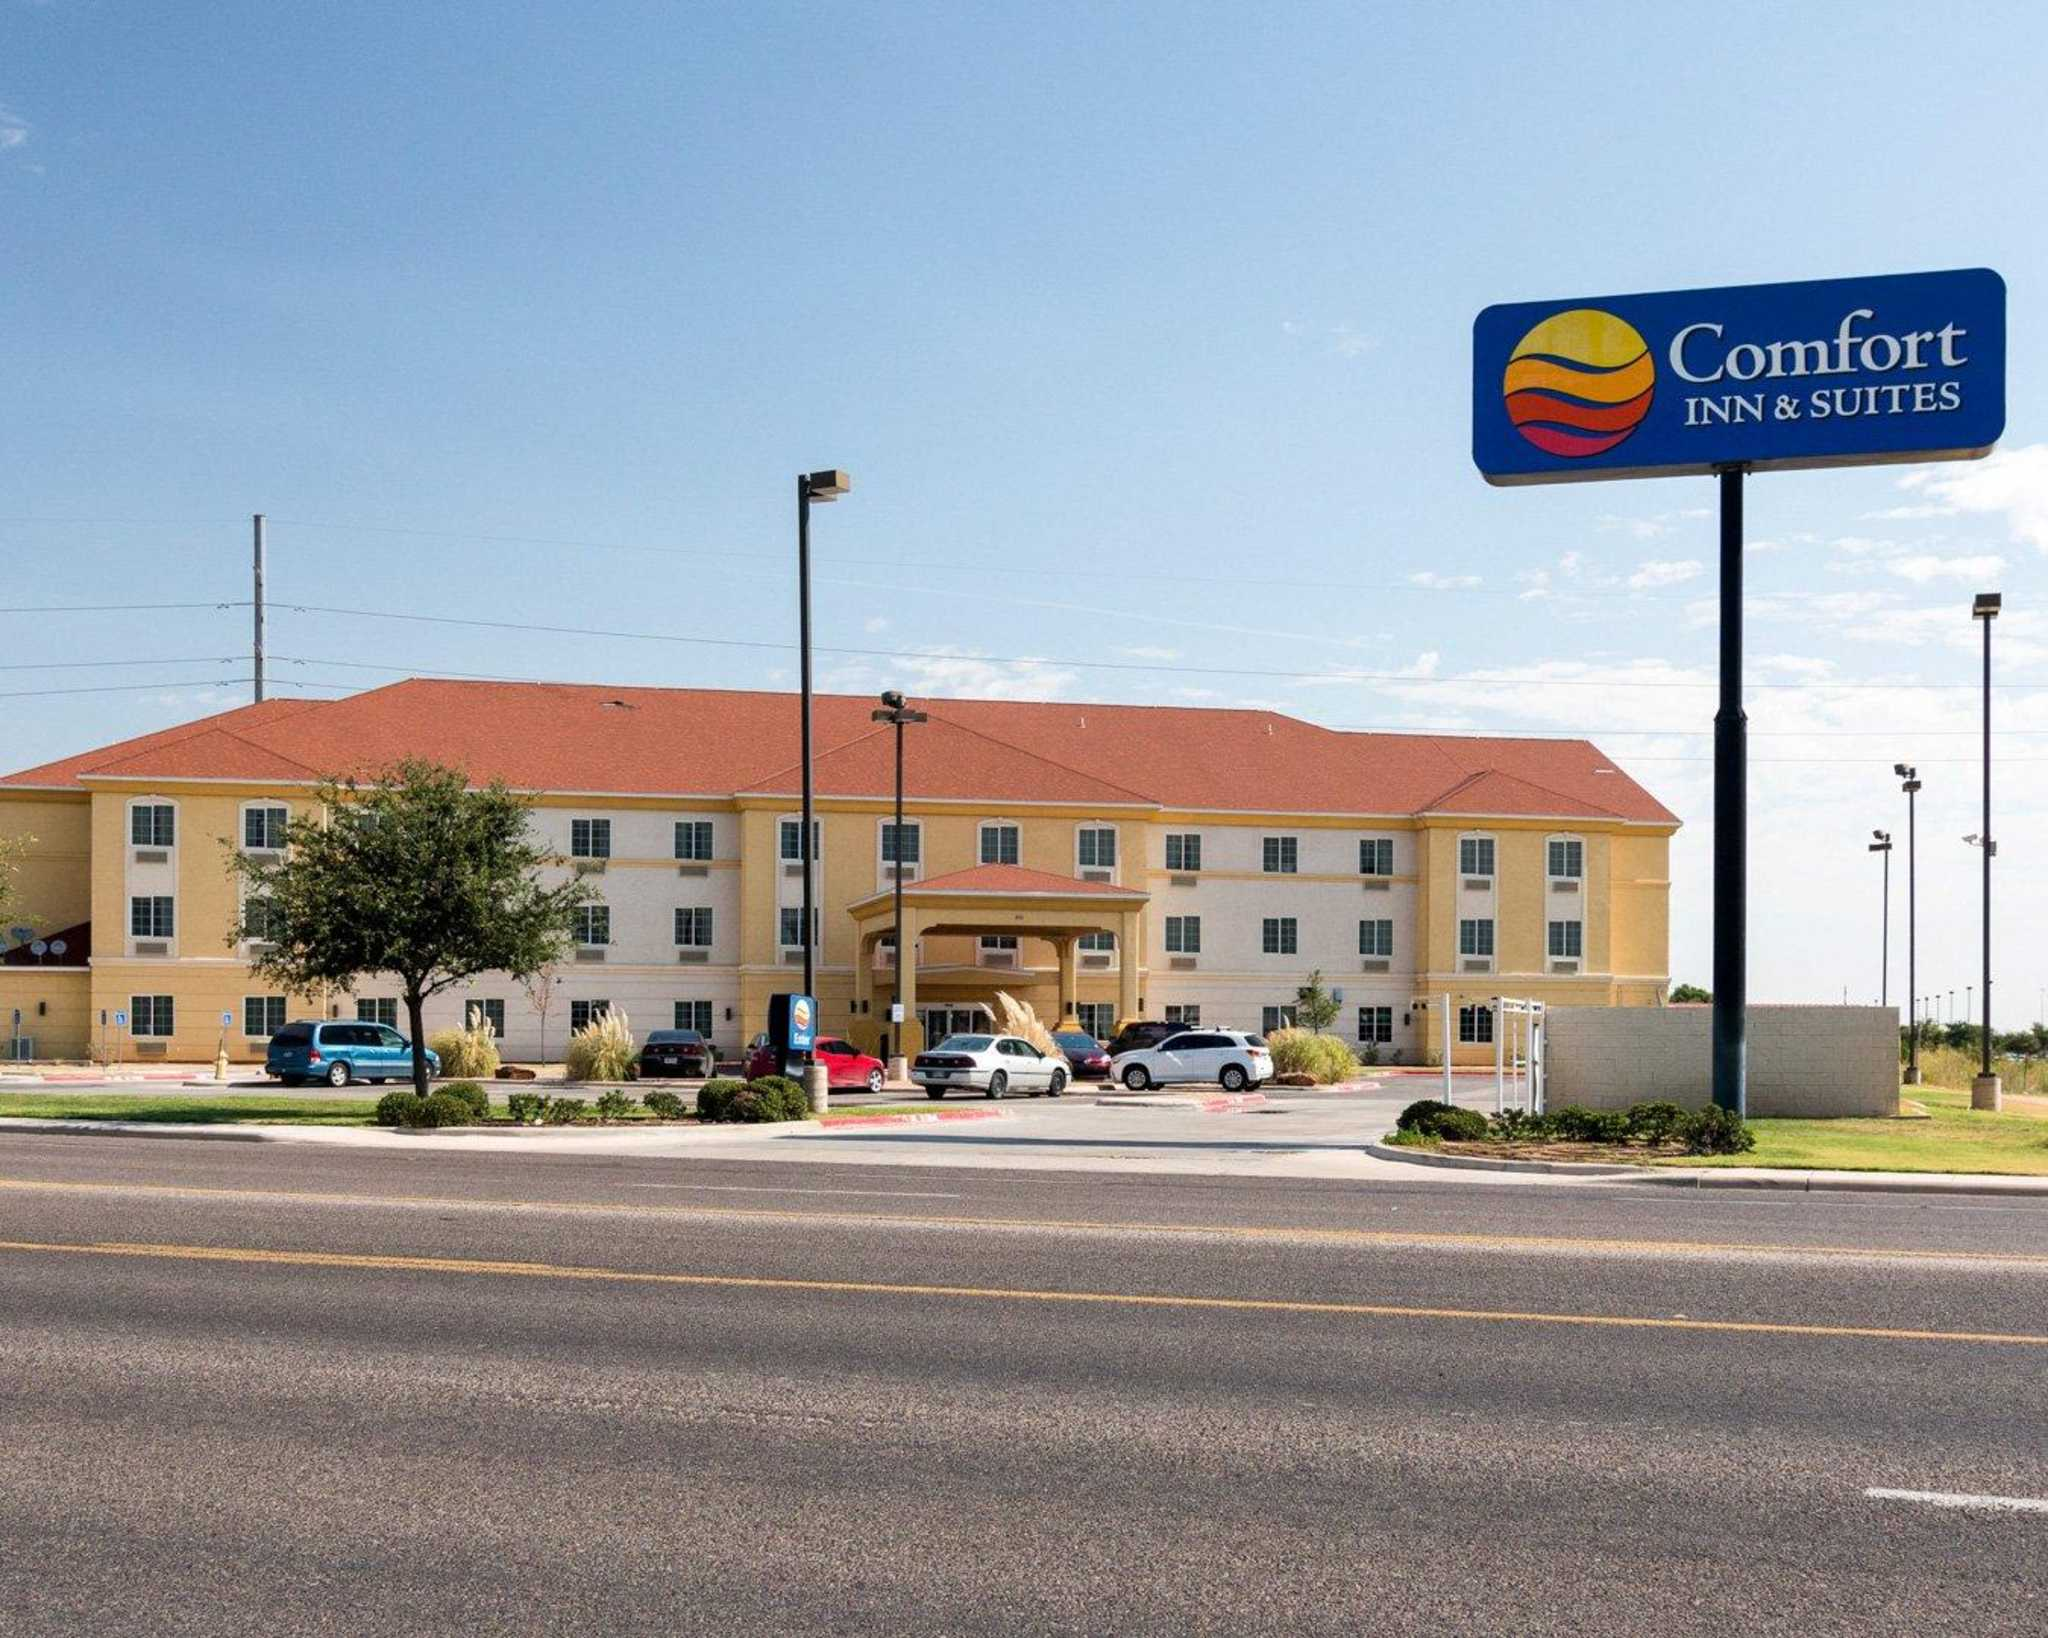 Hotel coupons odessa tx